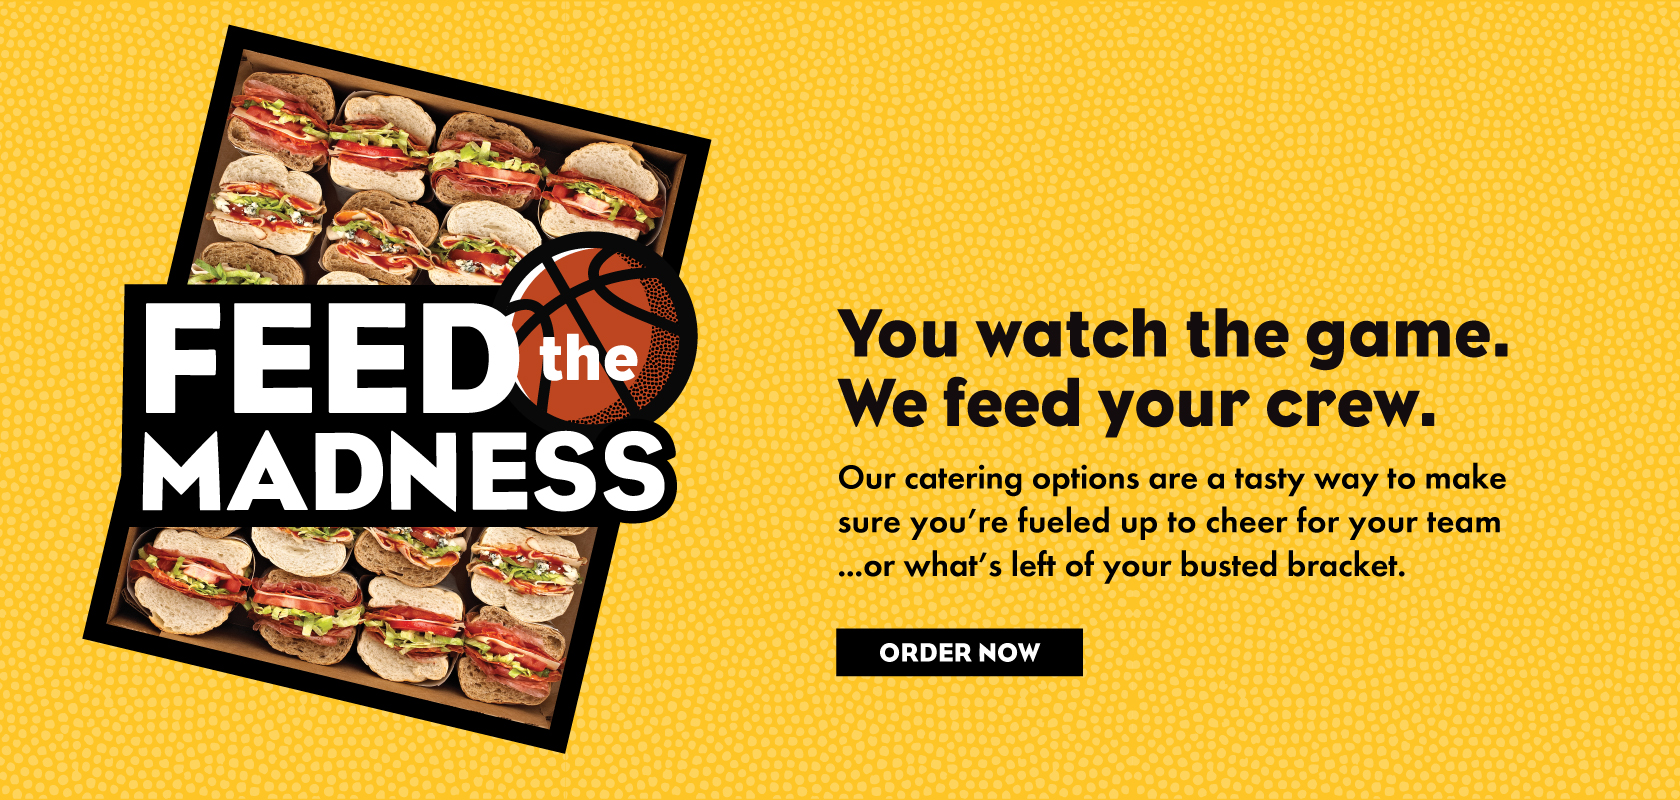 Feed the Madness! Our catering options are a tasty way to make sure you're fueled up to cheer for your team...or what's left of your busted bracket.  View Catering Menu.